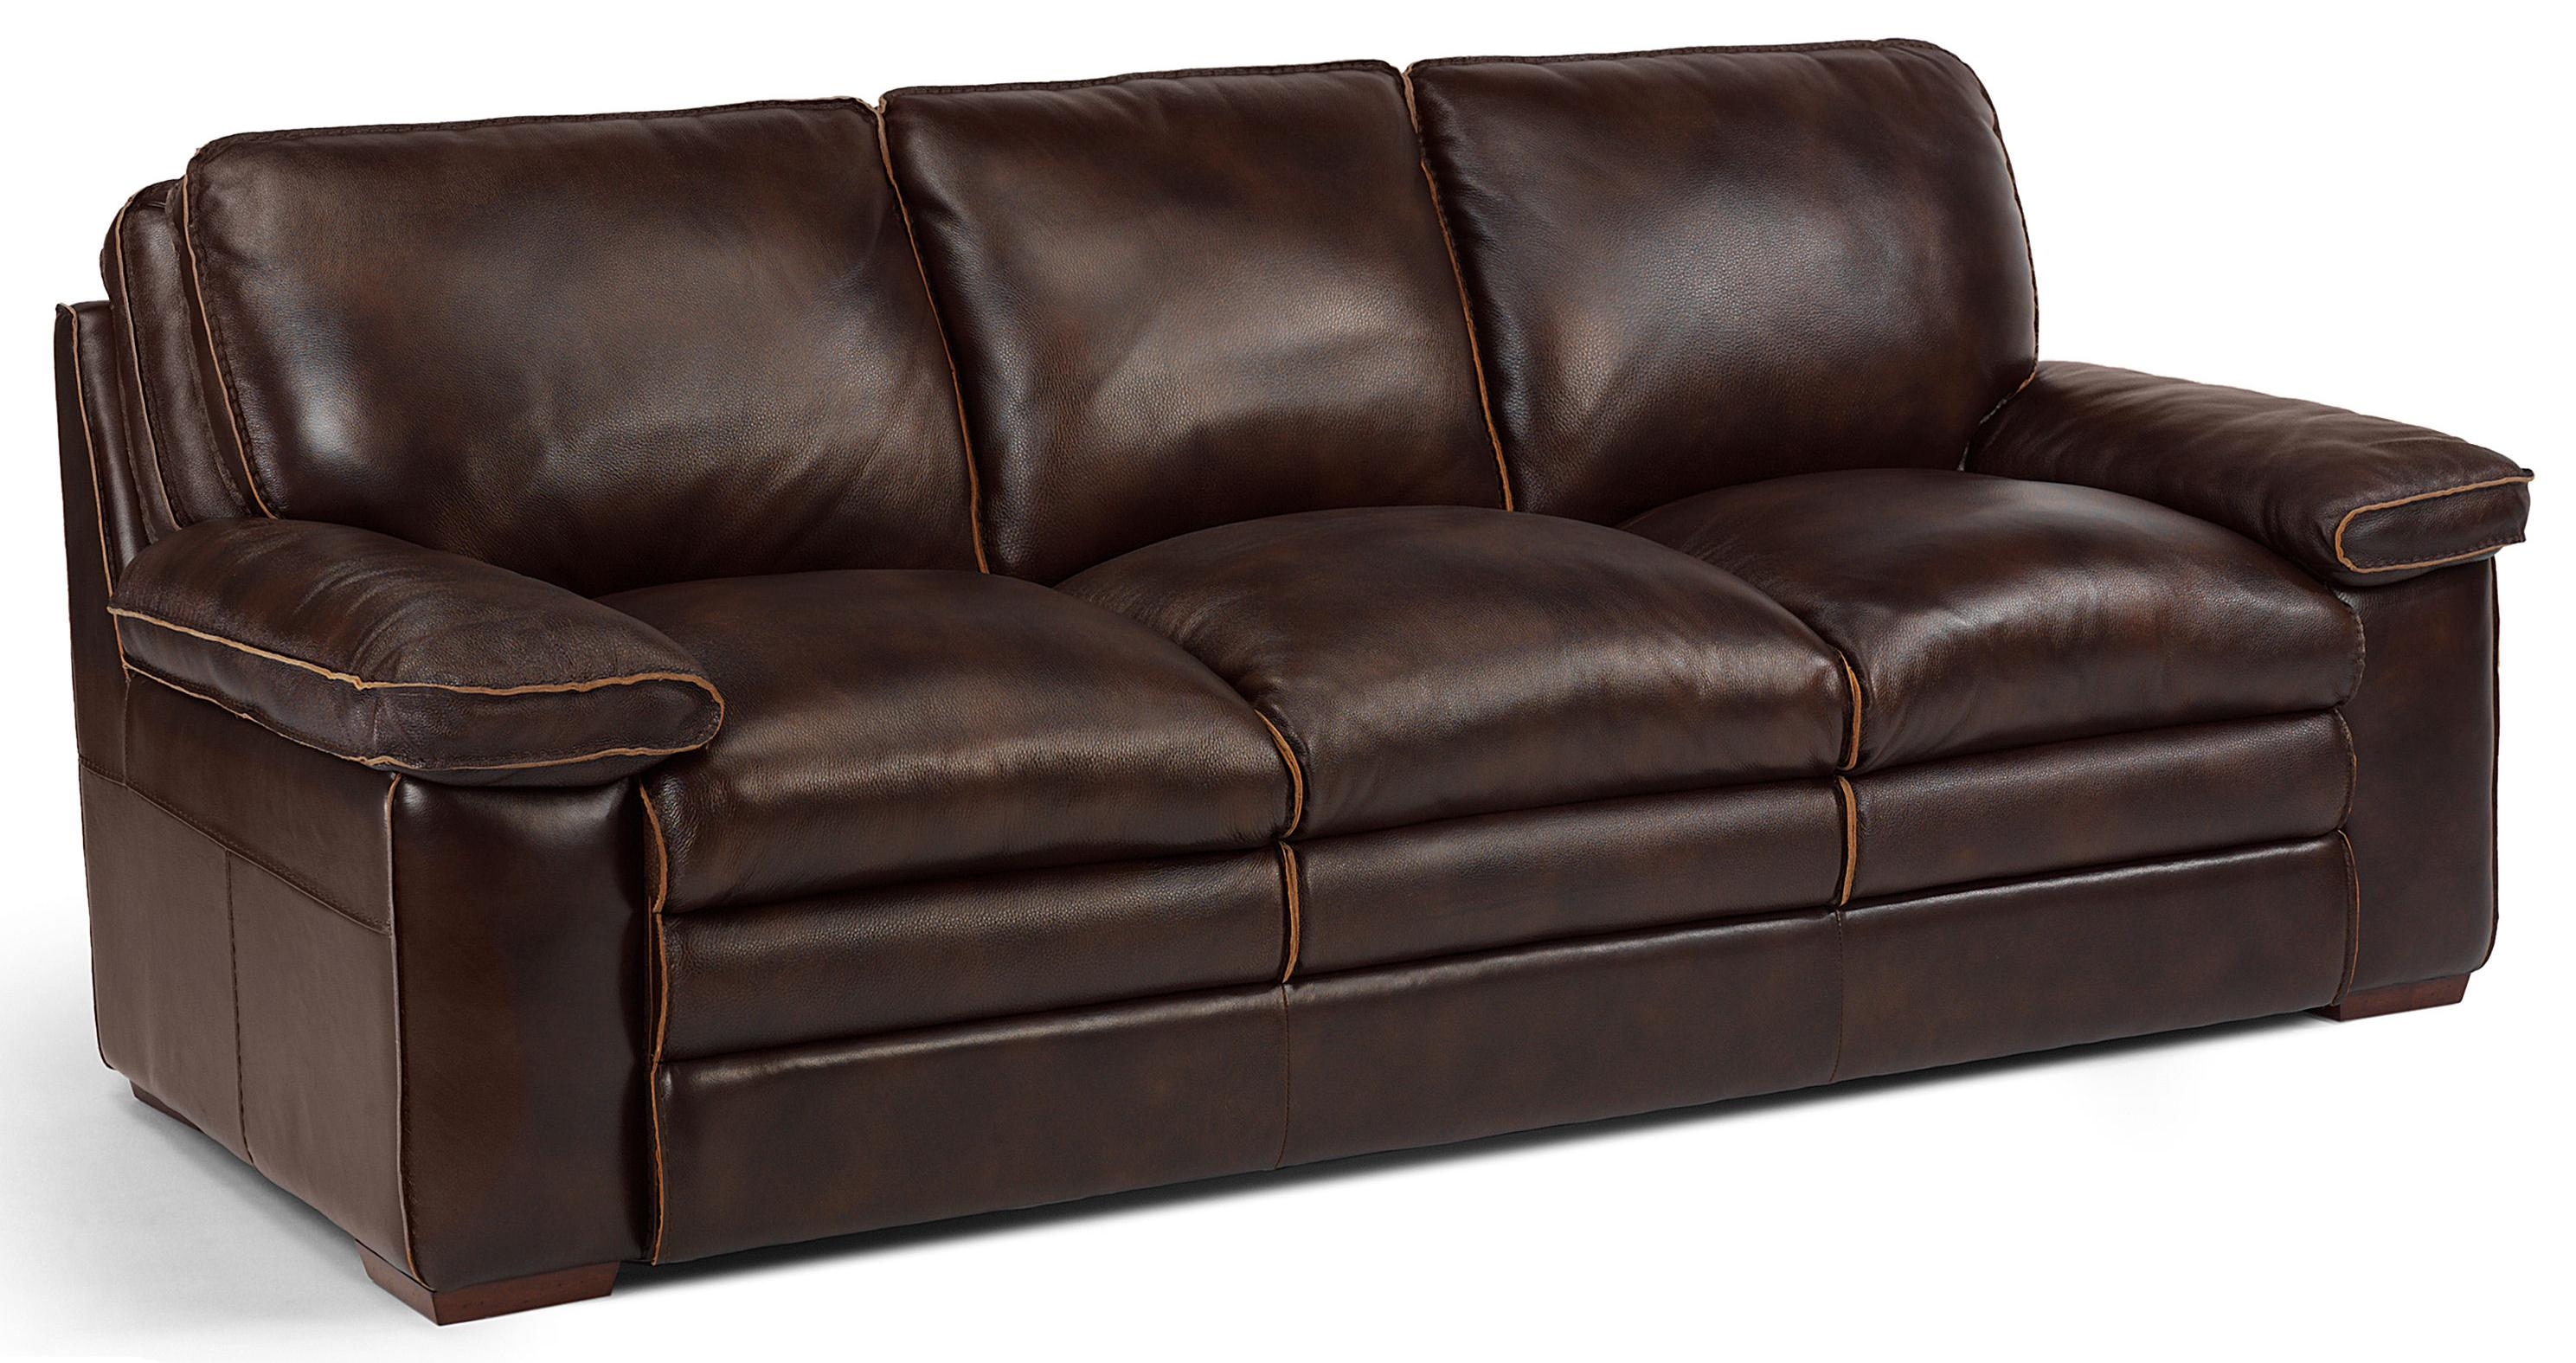 Penthouse 1774-31 Casual Sofa With